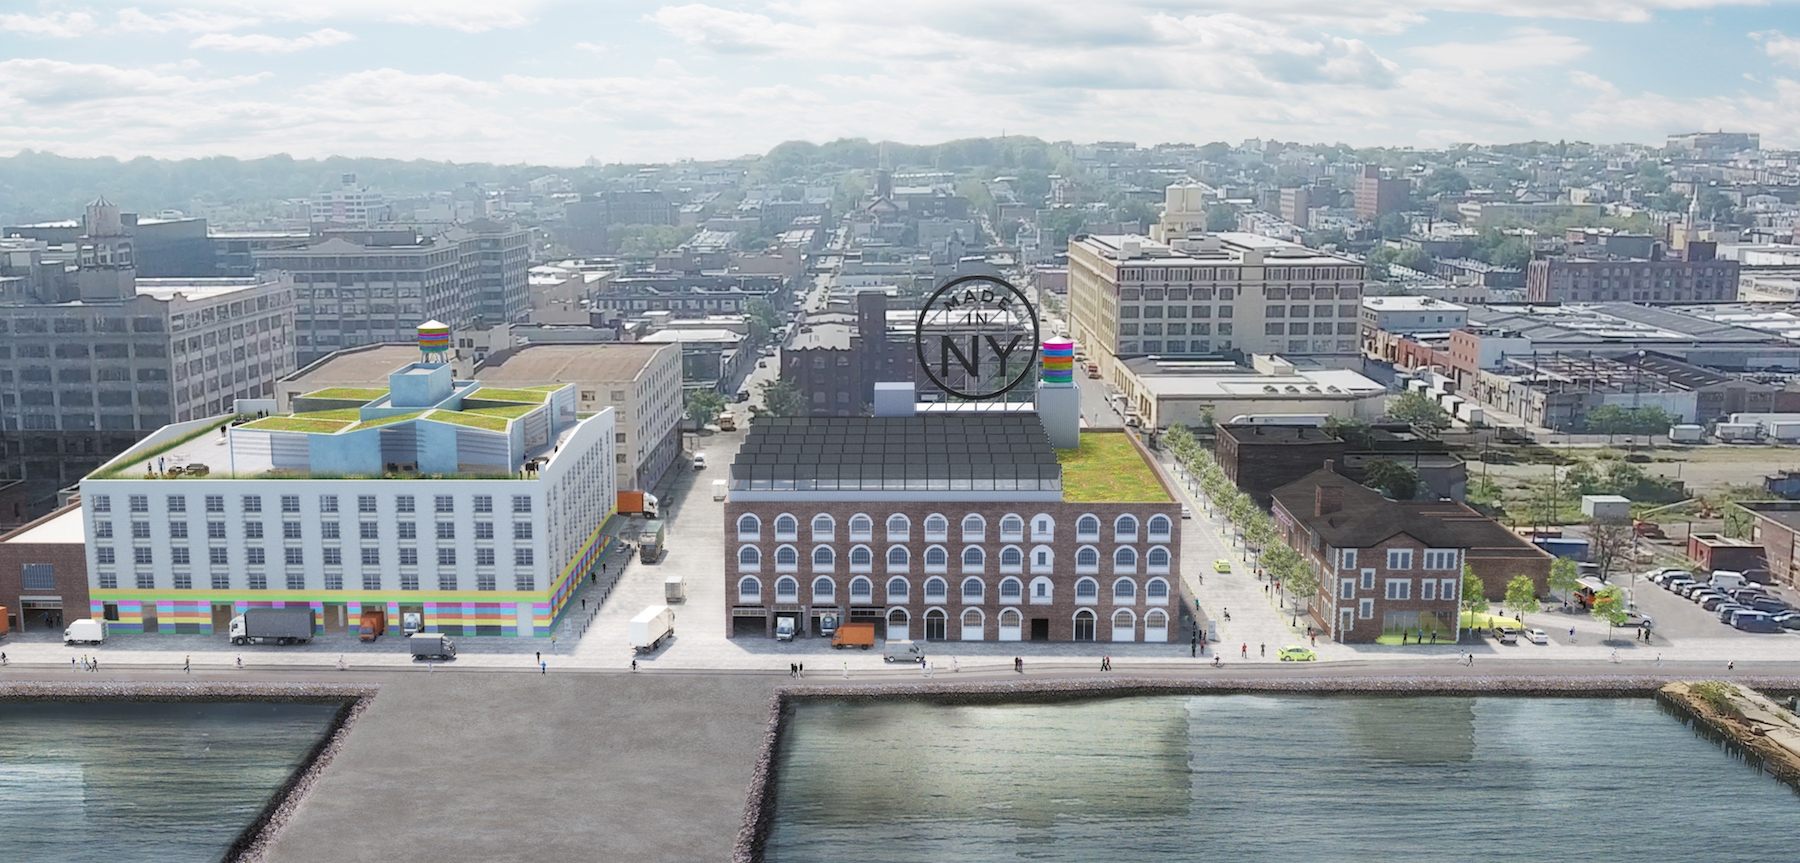 Sunset Park will become home to a sprawling hub for NYC's fashion industry